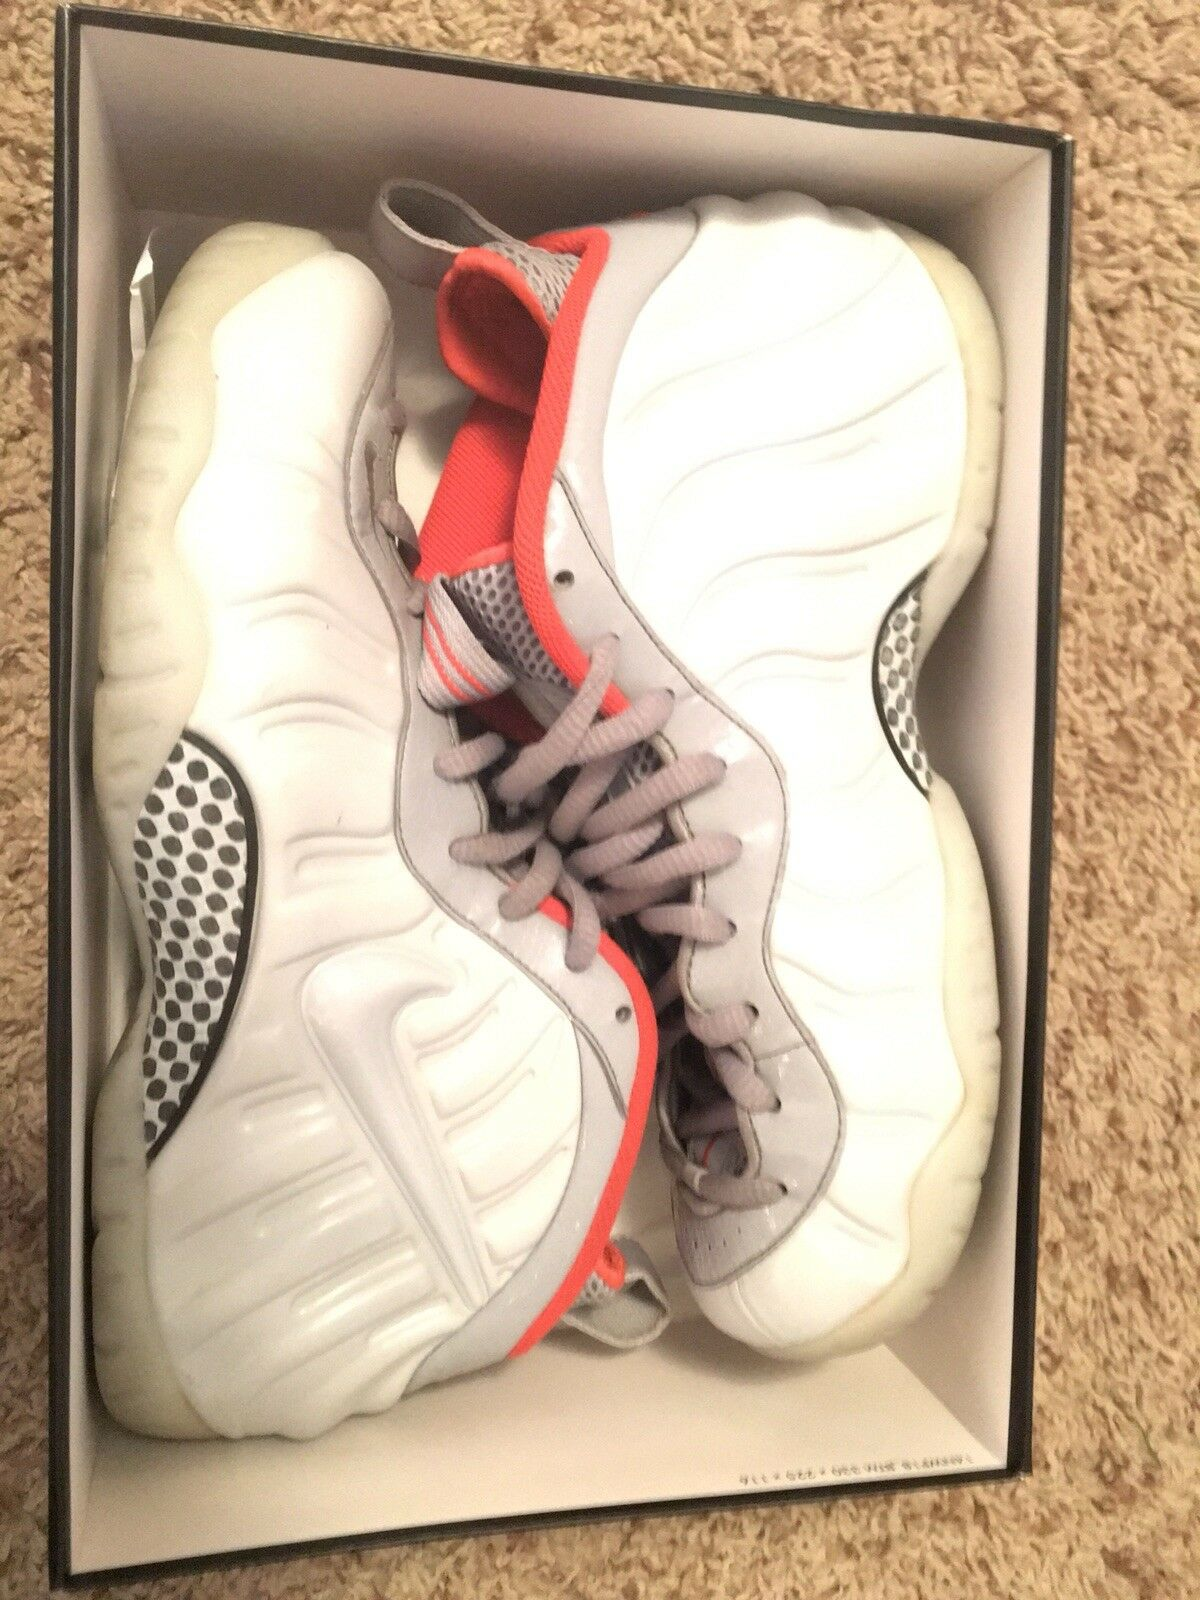 Men's Nike Foamposite size 11